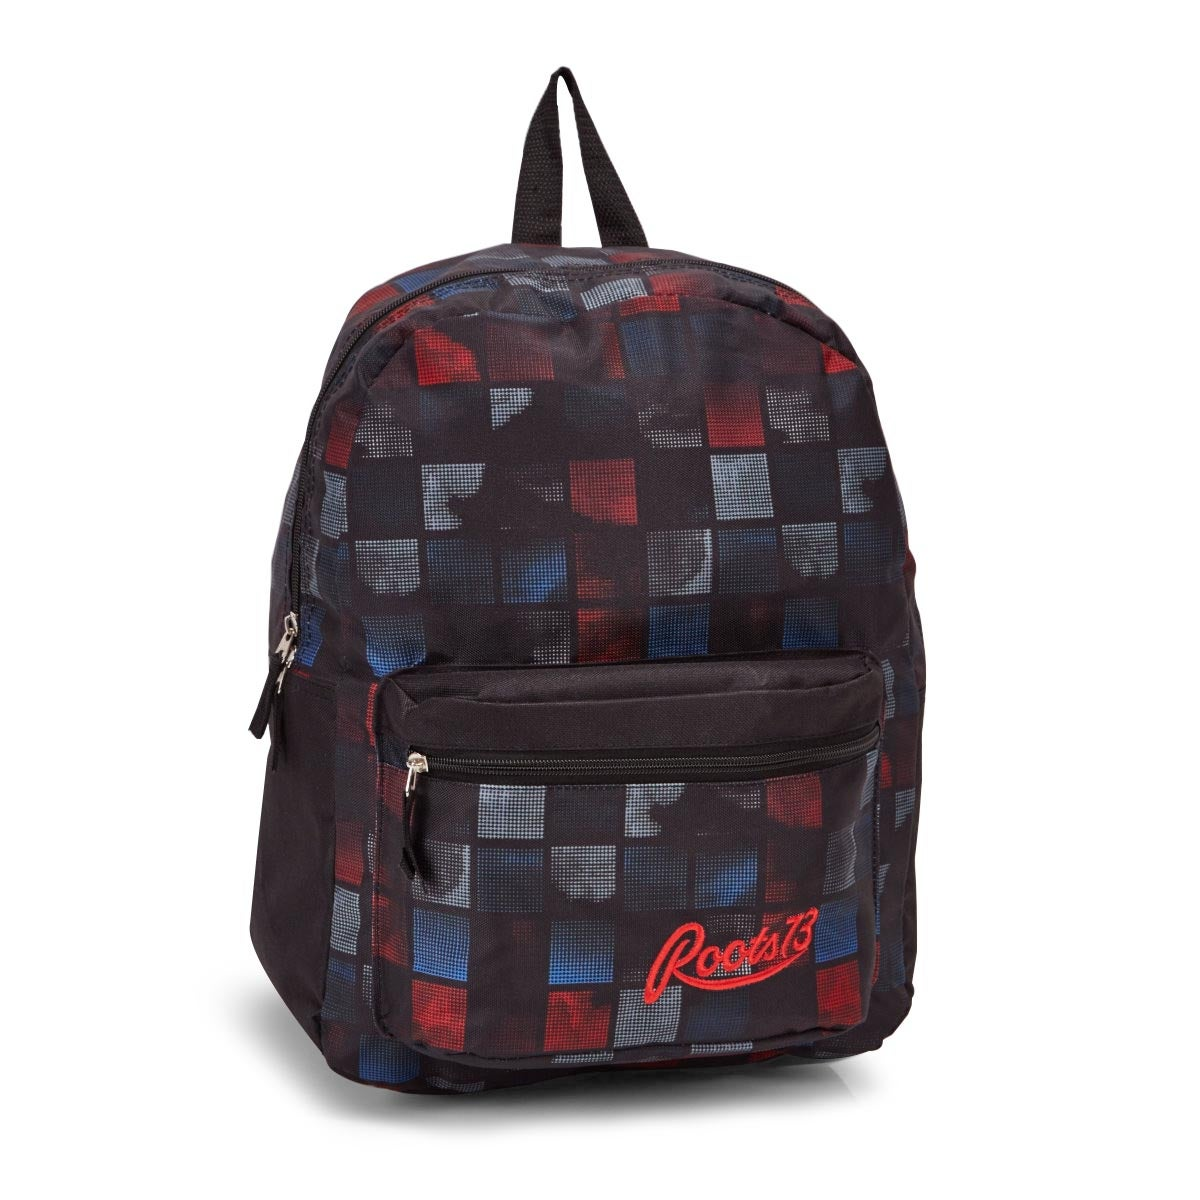 Roots73 blk/red/blu plaid backpack